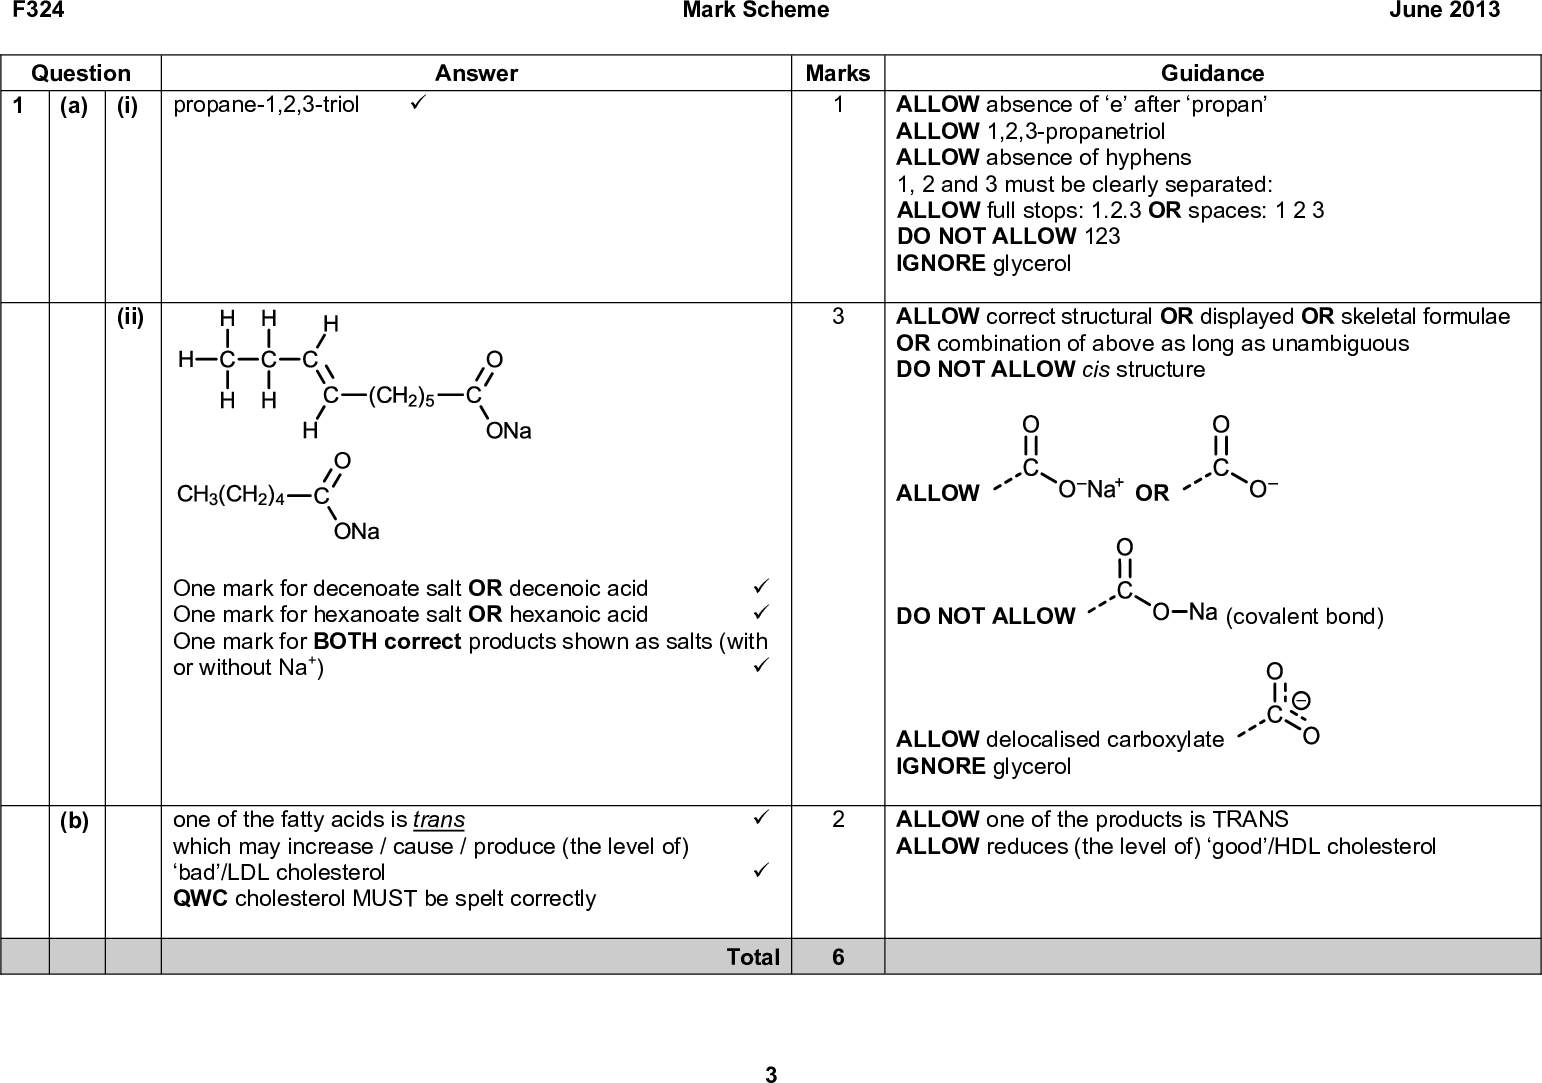 F324 Question (i) (a) (ii) propane-1,2,3-triol (cid:57) Answer Mark Scheme June 2013 Marks Guidance ALLOW absence of e after propan ALLOW 1,2,3-propanetriol ALLOW absence of hyphens 1, 2 and 3 must be clearly separated: ALLOW full stops: 1.2.3 OR spaces: 1 2 3 DO NOT ALLOW 123 IGNORE glycerol ALLOW correct structural OR displayed OR skeletal formulae OR combination of above as long as unambiguous DO NOT ALLOW cis structure One mark for decenoate salt OR decenoic acid (cid:57) One mark for hexanoate salt OR hexanoic acid (cid:57) One mark for BOTH correct products shown as salts (with or without Na+) (cid:57) ALLOW OR DO NOT ALLOW (covalent bond) one of the fatty acids is trans which may increase / cause / produce (the level of) bad/LDL cholesterol QWC cholesterol MUST be spelt correctly (b) ALLOW delocalised carboxylate IGNORE glycerol ALLOW one of the products is TRANS ALLOW reduces (the level of) good/HDL cholesterol (cid:57) (cid:57) Total<br />